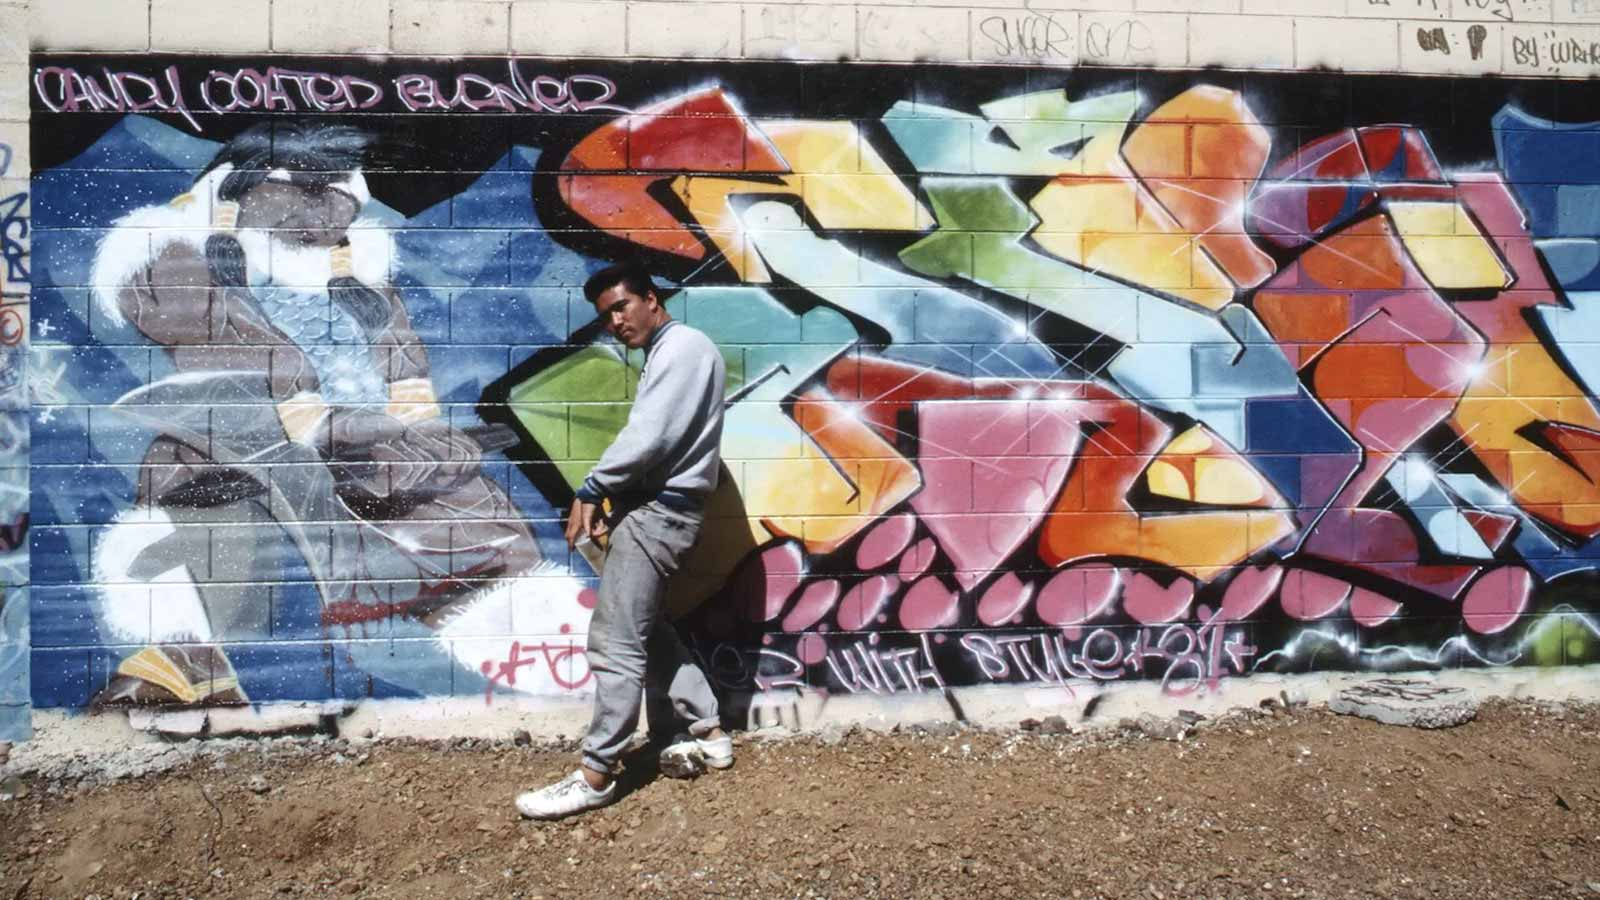 Bay Area Graffiti: The Early Years